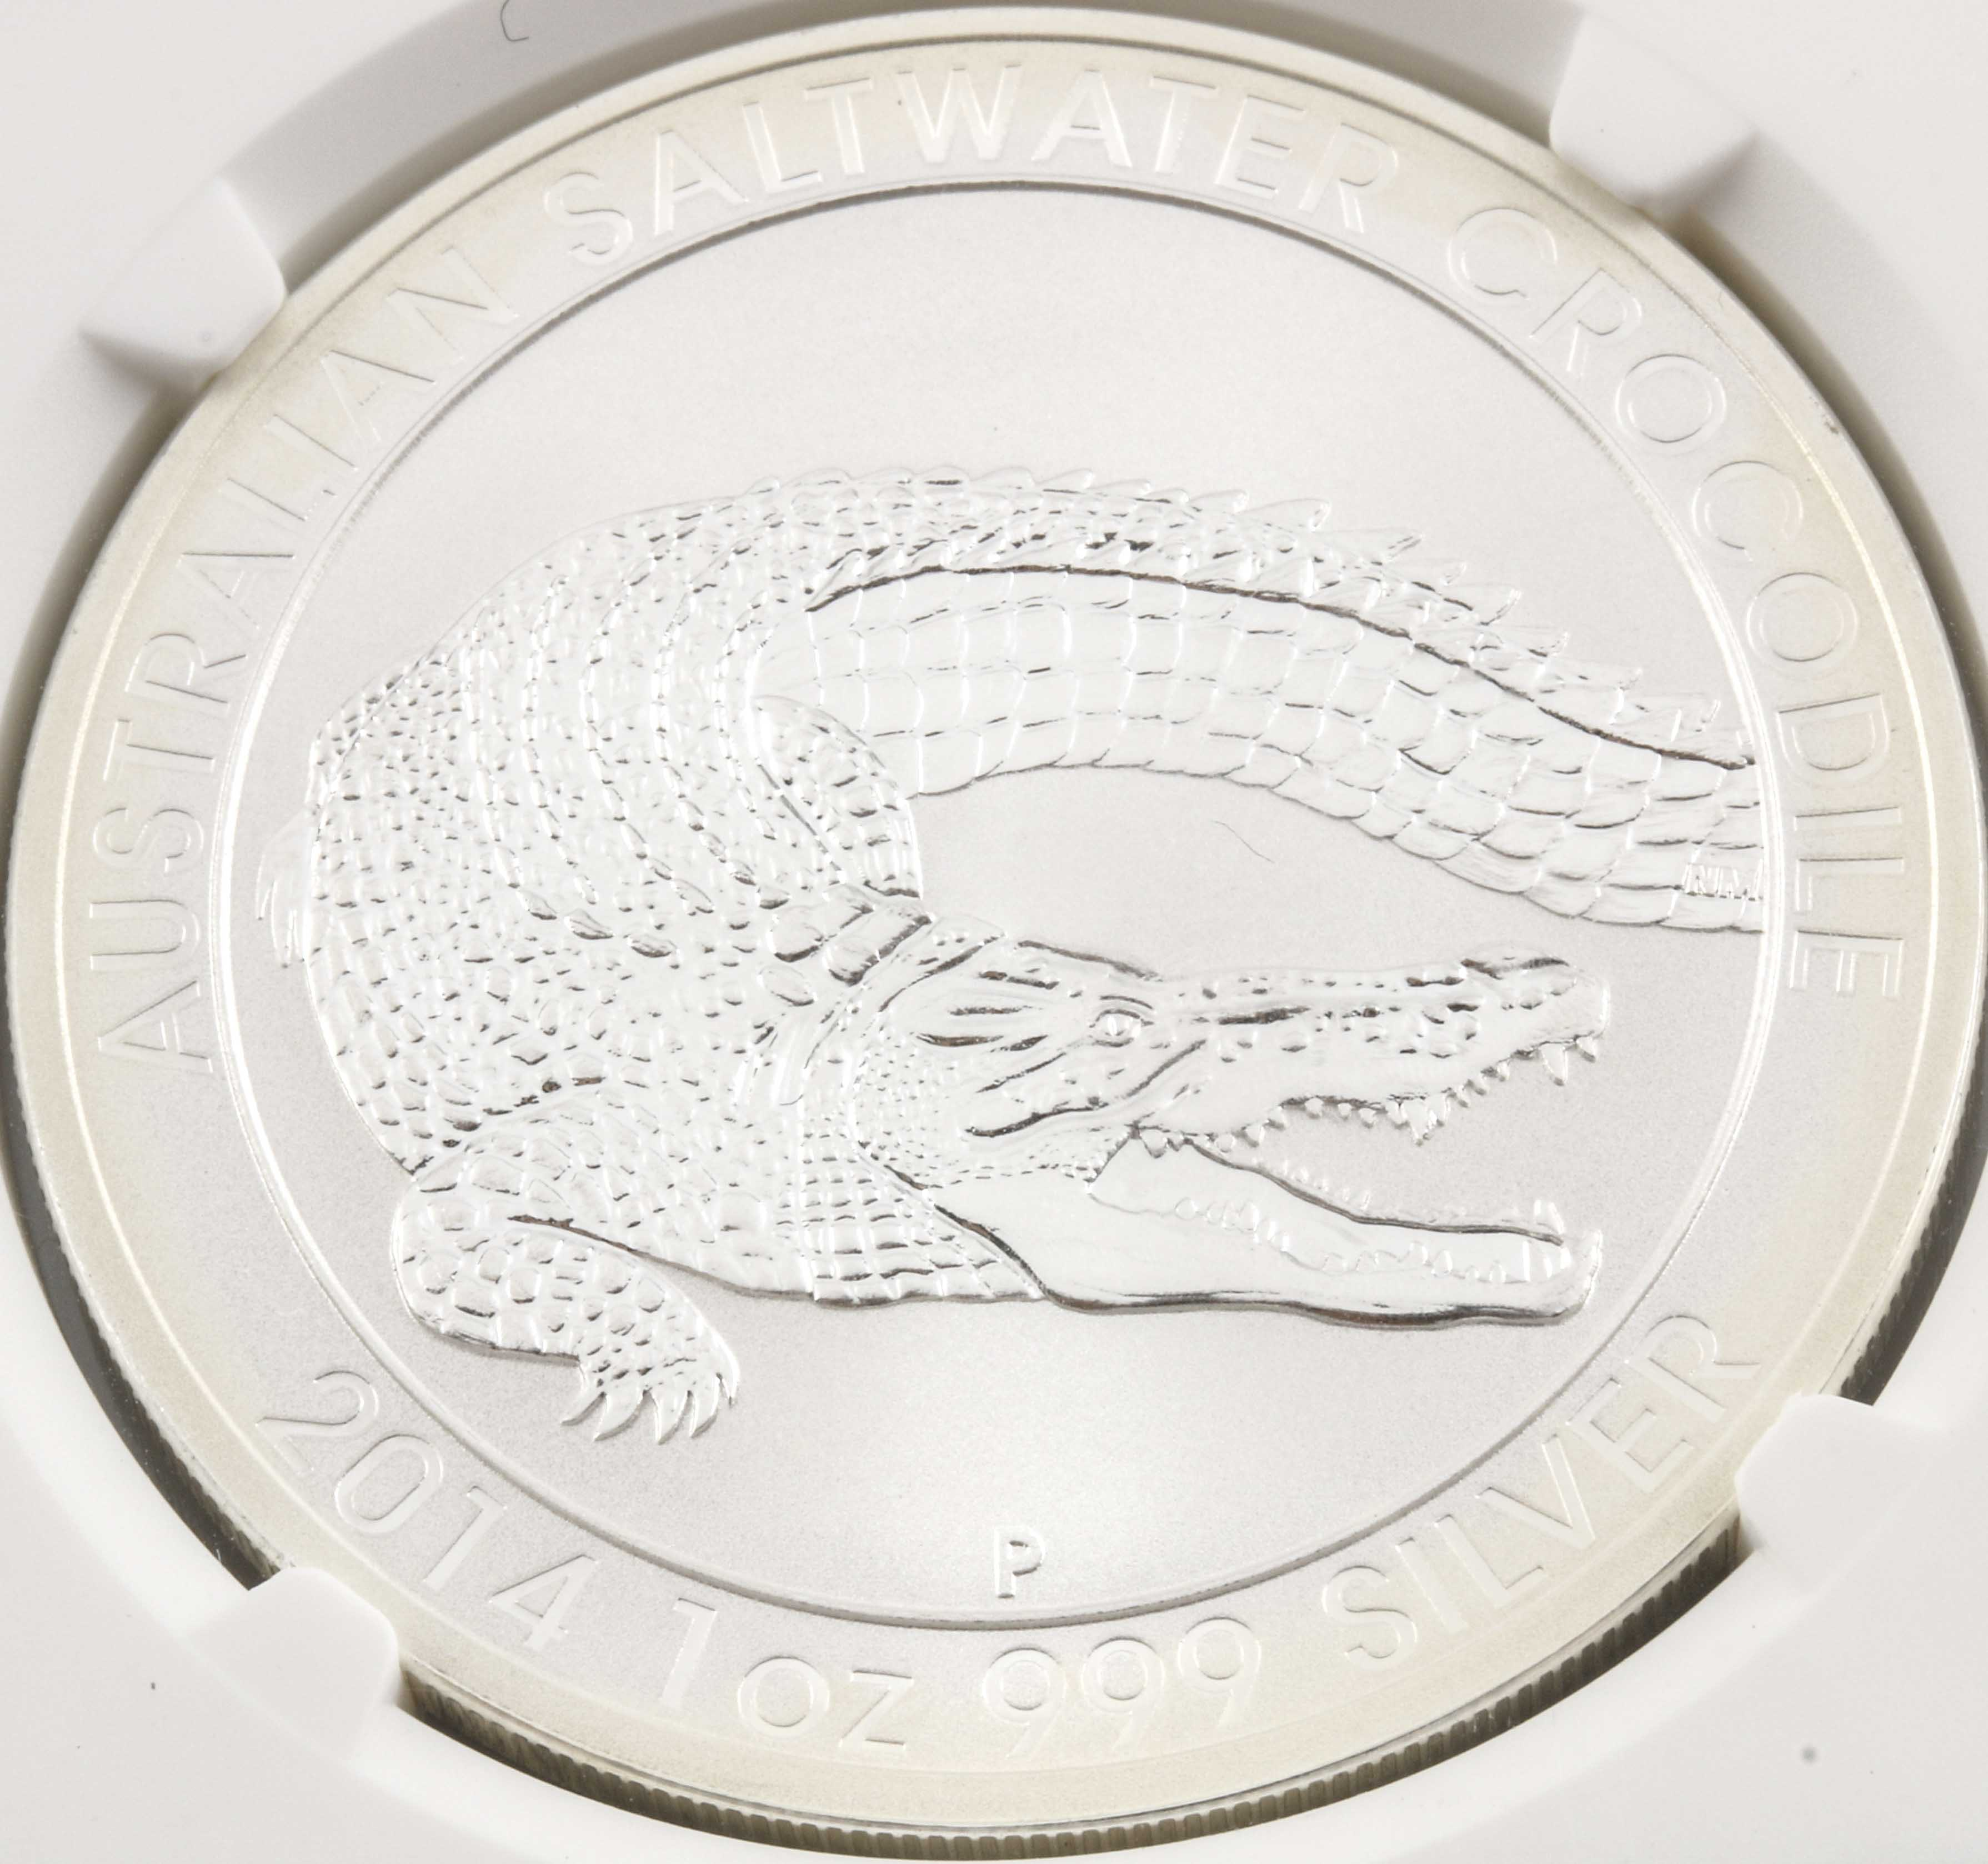 Encapsulated and Graded MS70 (by NGC) 2014 P Australian Saltwater Crocodile One-Dollar Silver Coin